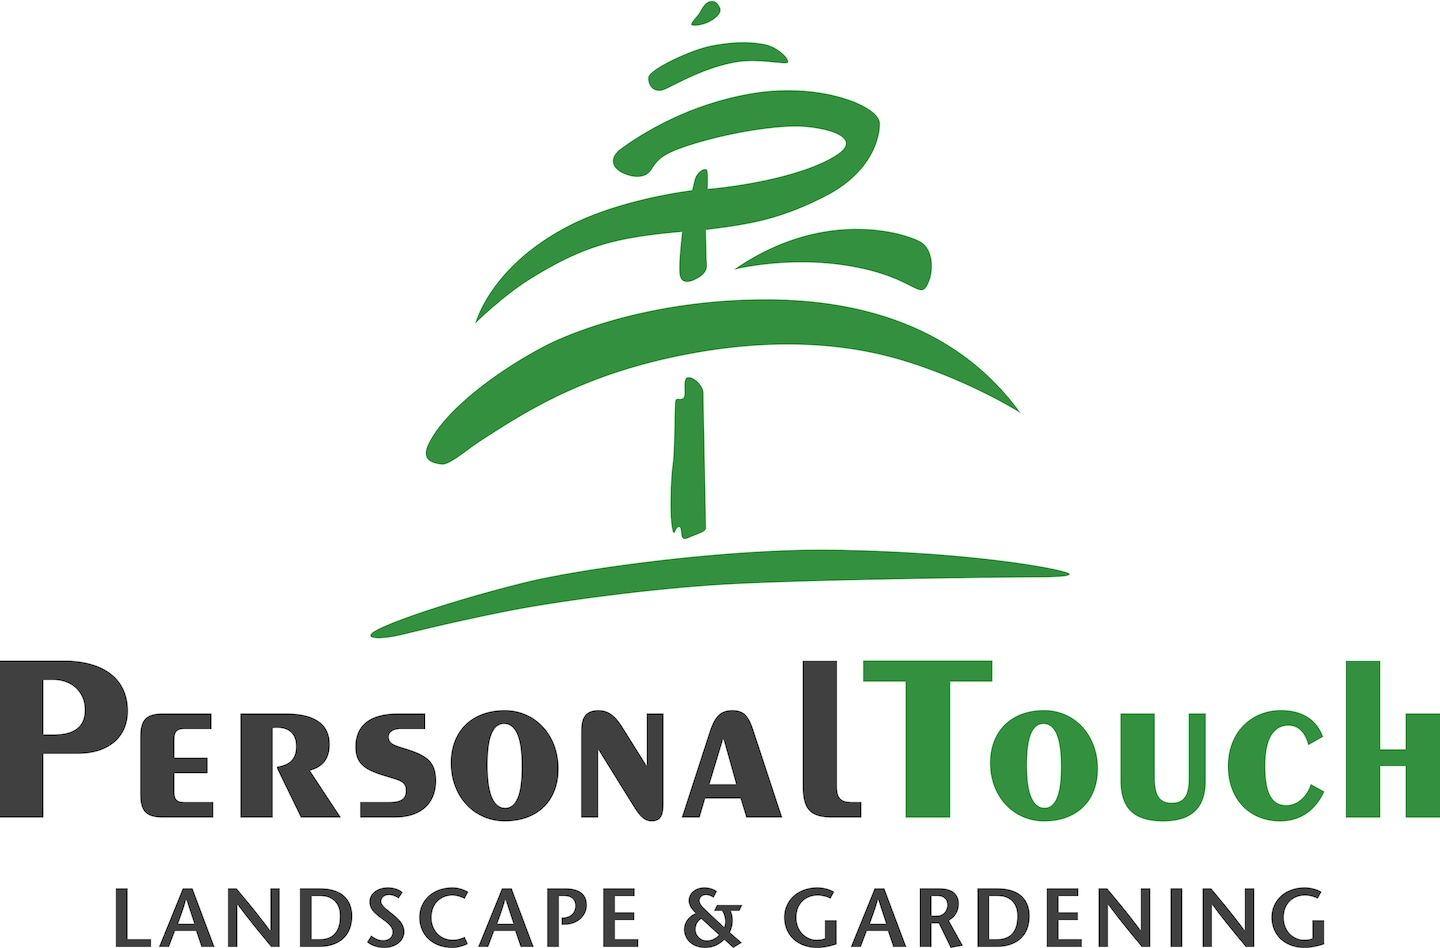 Personal Touch Landscape and Gardening